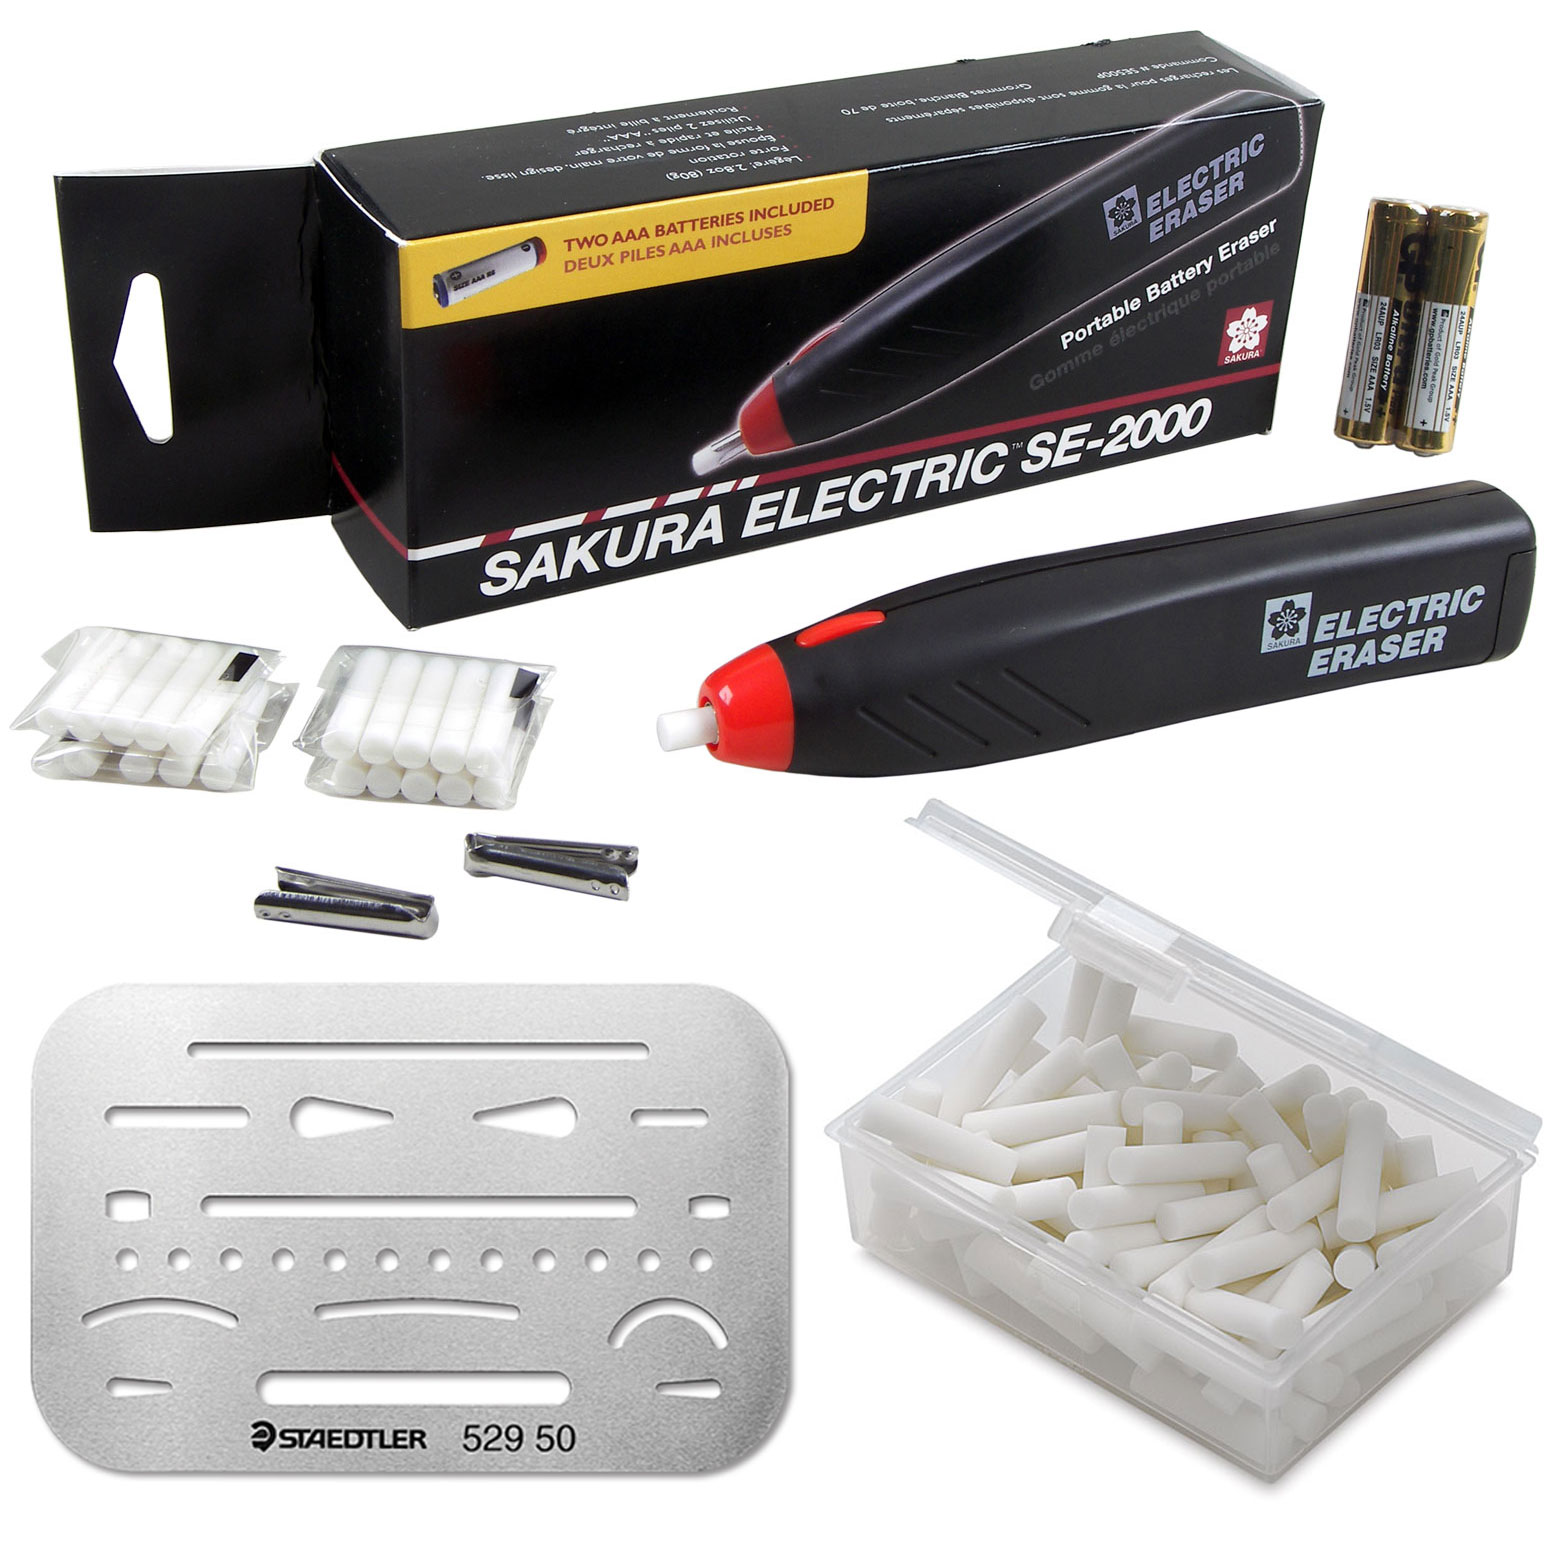 Sakura Electric Eraser Kit - Cordless, Batteries, 80 Erasers & Shield, Portable